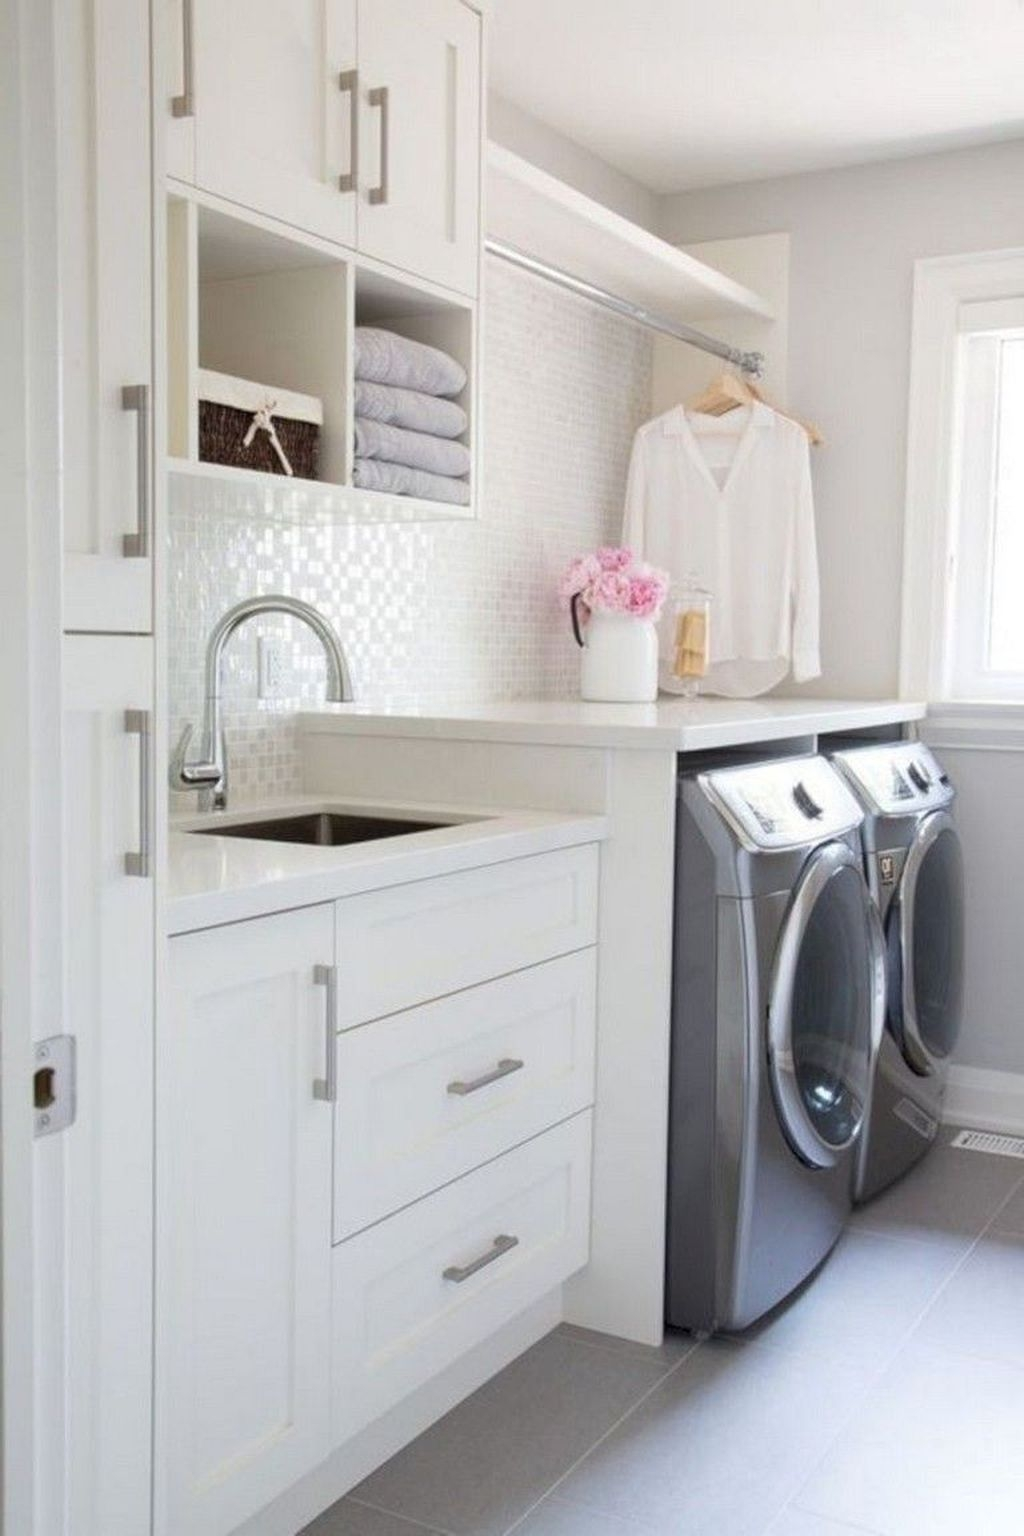 Cute Laundry Room Storage Shelves Ideas To Consider33